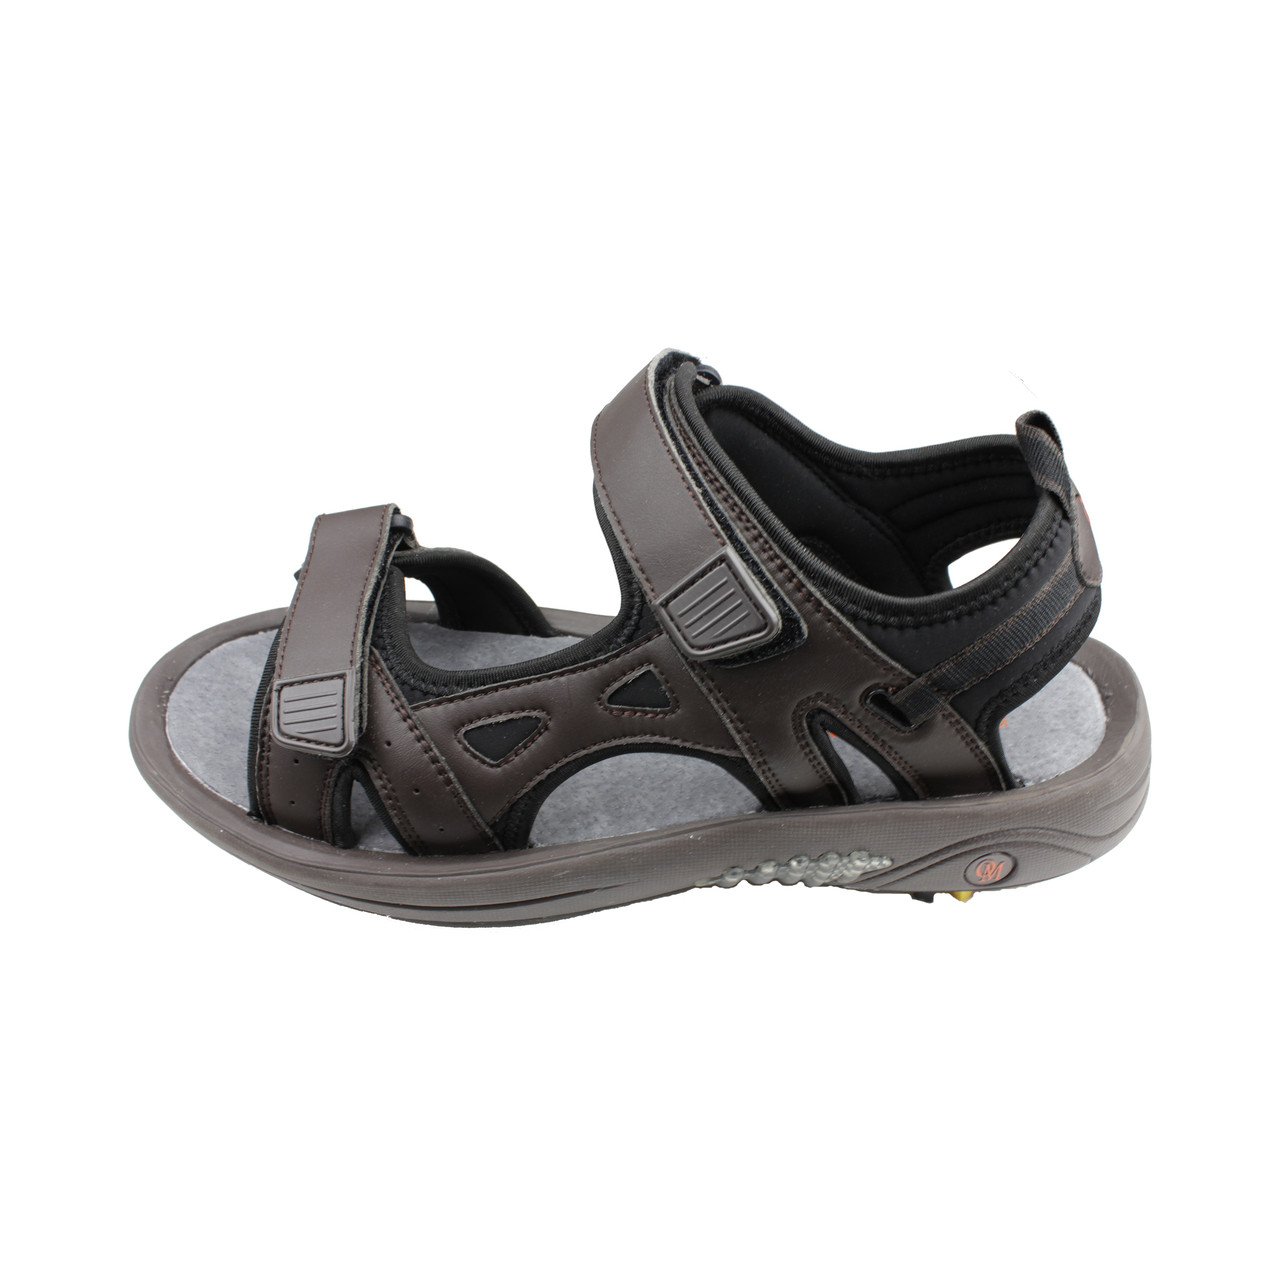 Women's WCS400S Athletic Golf Sandal by Oregon Mudders